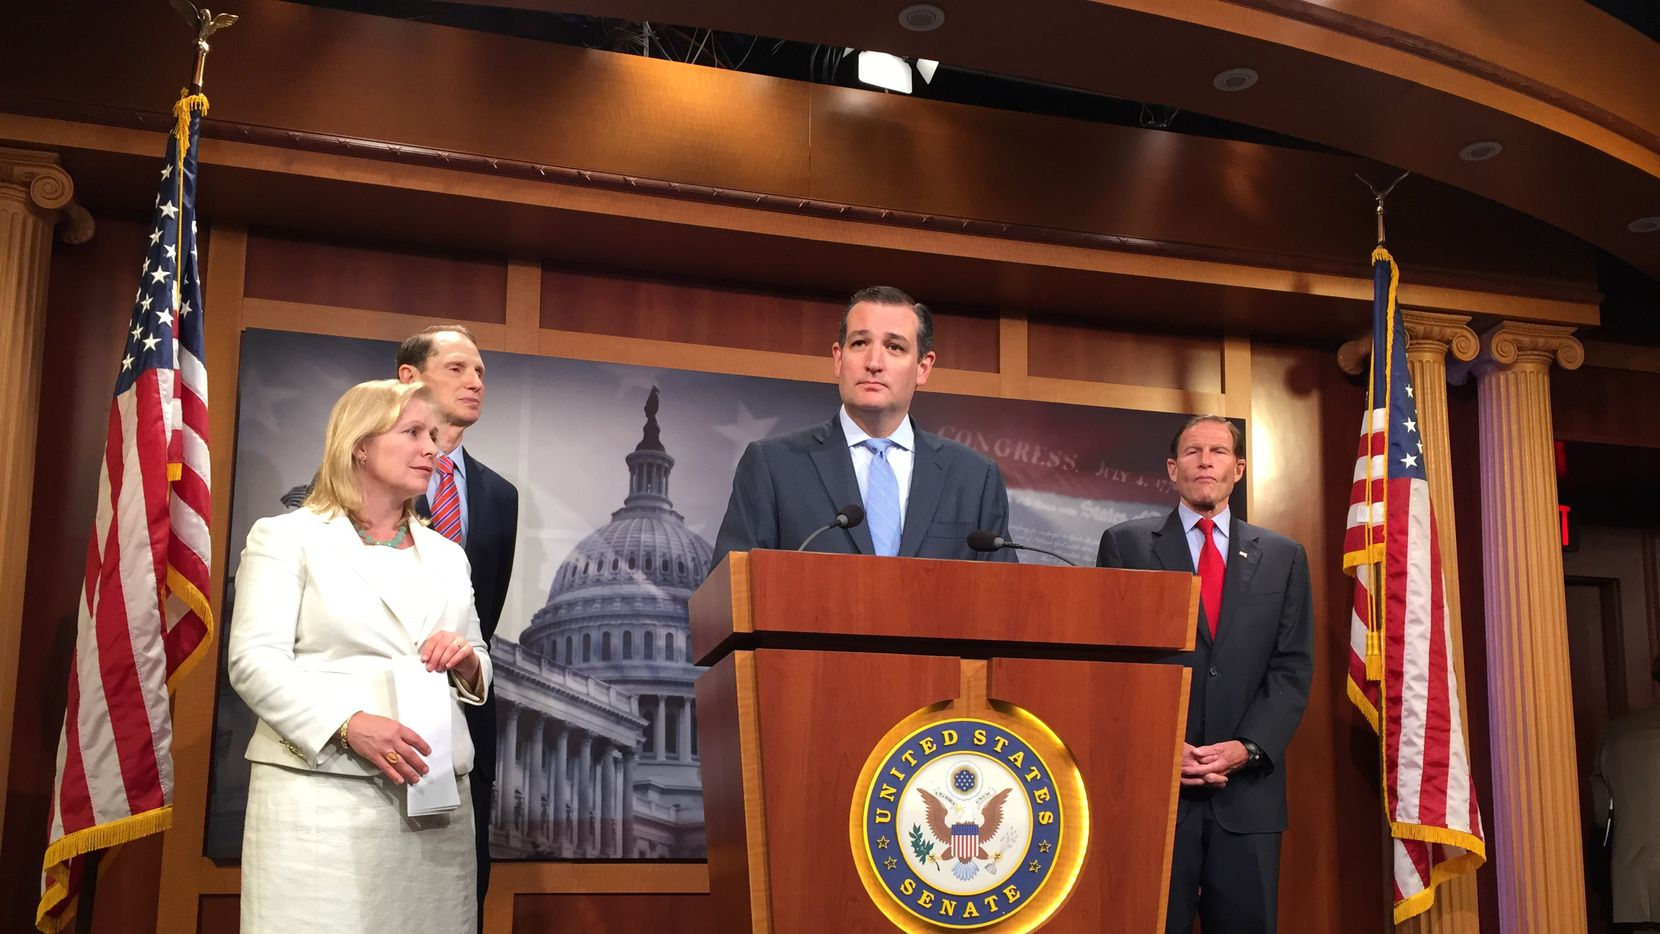 Sen. Ted Cruz, joined by (L to R) Sens. Kirsten Gillibrand, D-N.Y., Ron Wyden, D-Ore., and Chuck Grassley, R-Iowa., speaks in favor of the Military Justice Improvement Act on June 16, 2015 at the Capitol. The bill, which failed as an amendment to the National Defense Authorization Act, would have shifted sexual assault claims away from the victim's chain of command and over to independent military prosecutors. (Sylvan Lane/Staff photo).